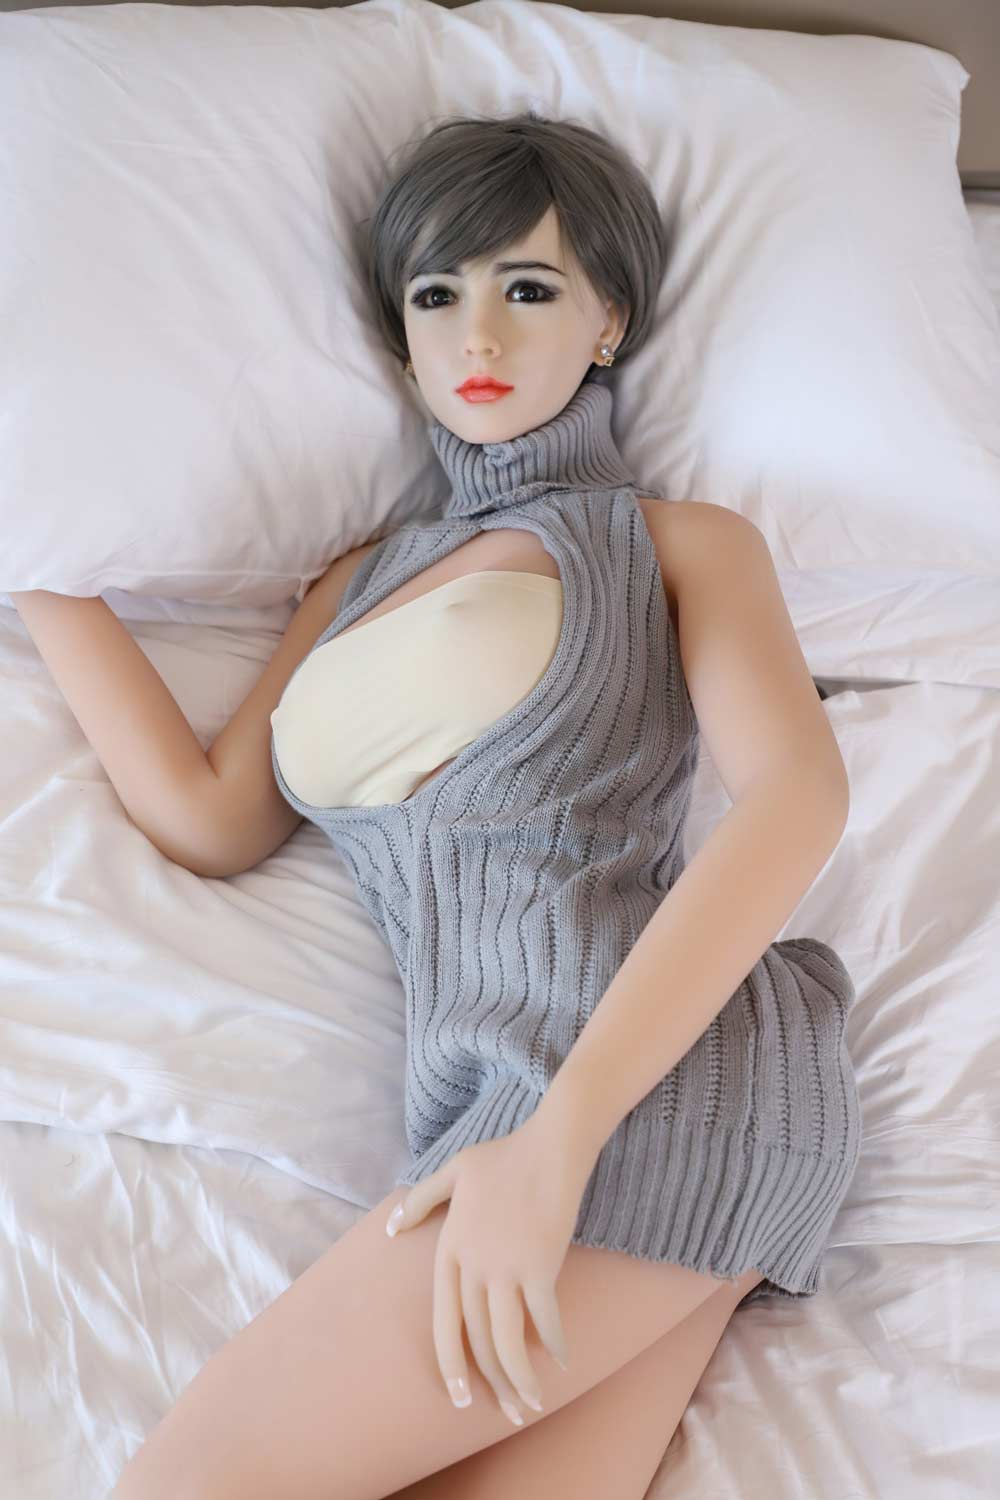 Silicone sex doll with hands in pillows